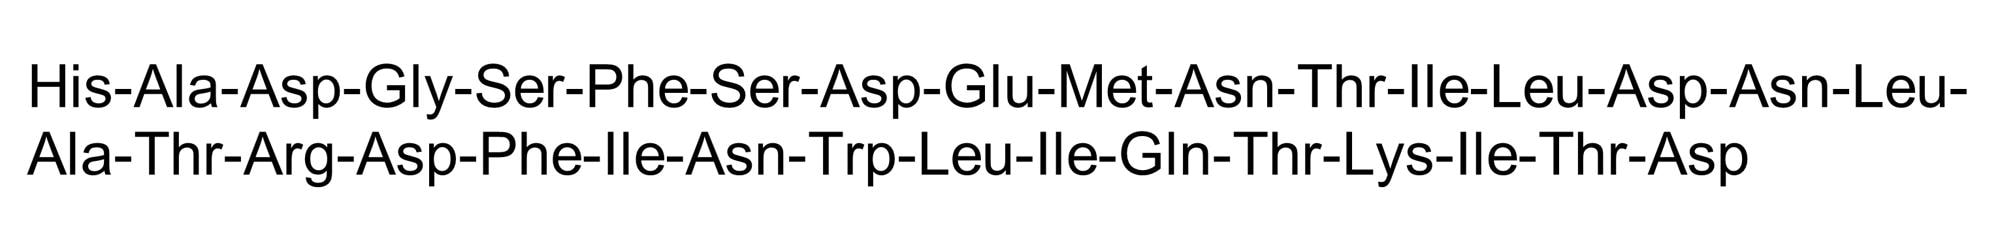 Chemical Structure - Glucagon-Like Peptide II (rat), stimulates cell proliferation in GI tract (ab142306)